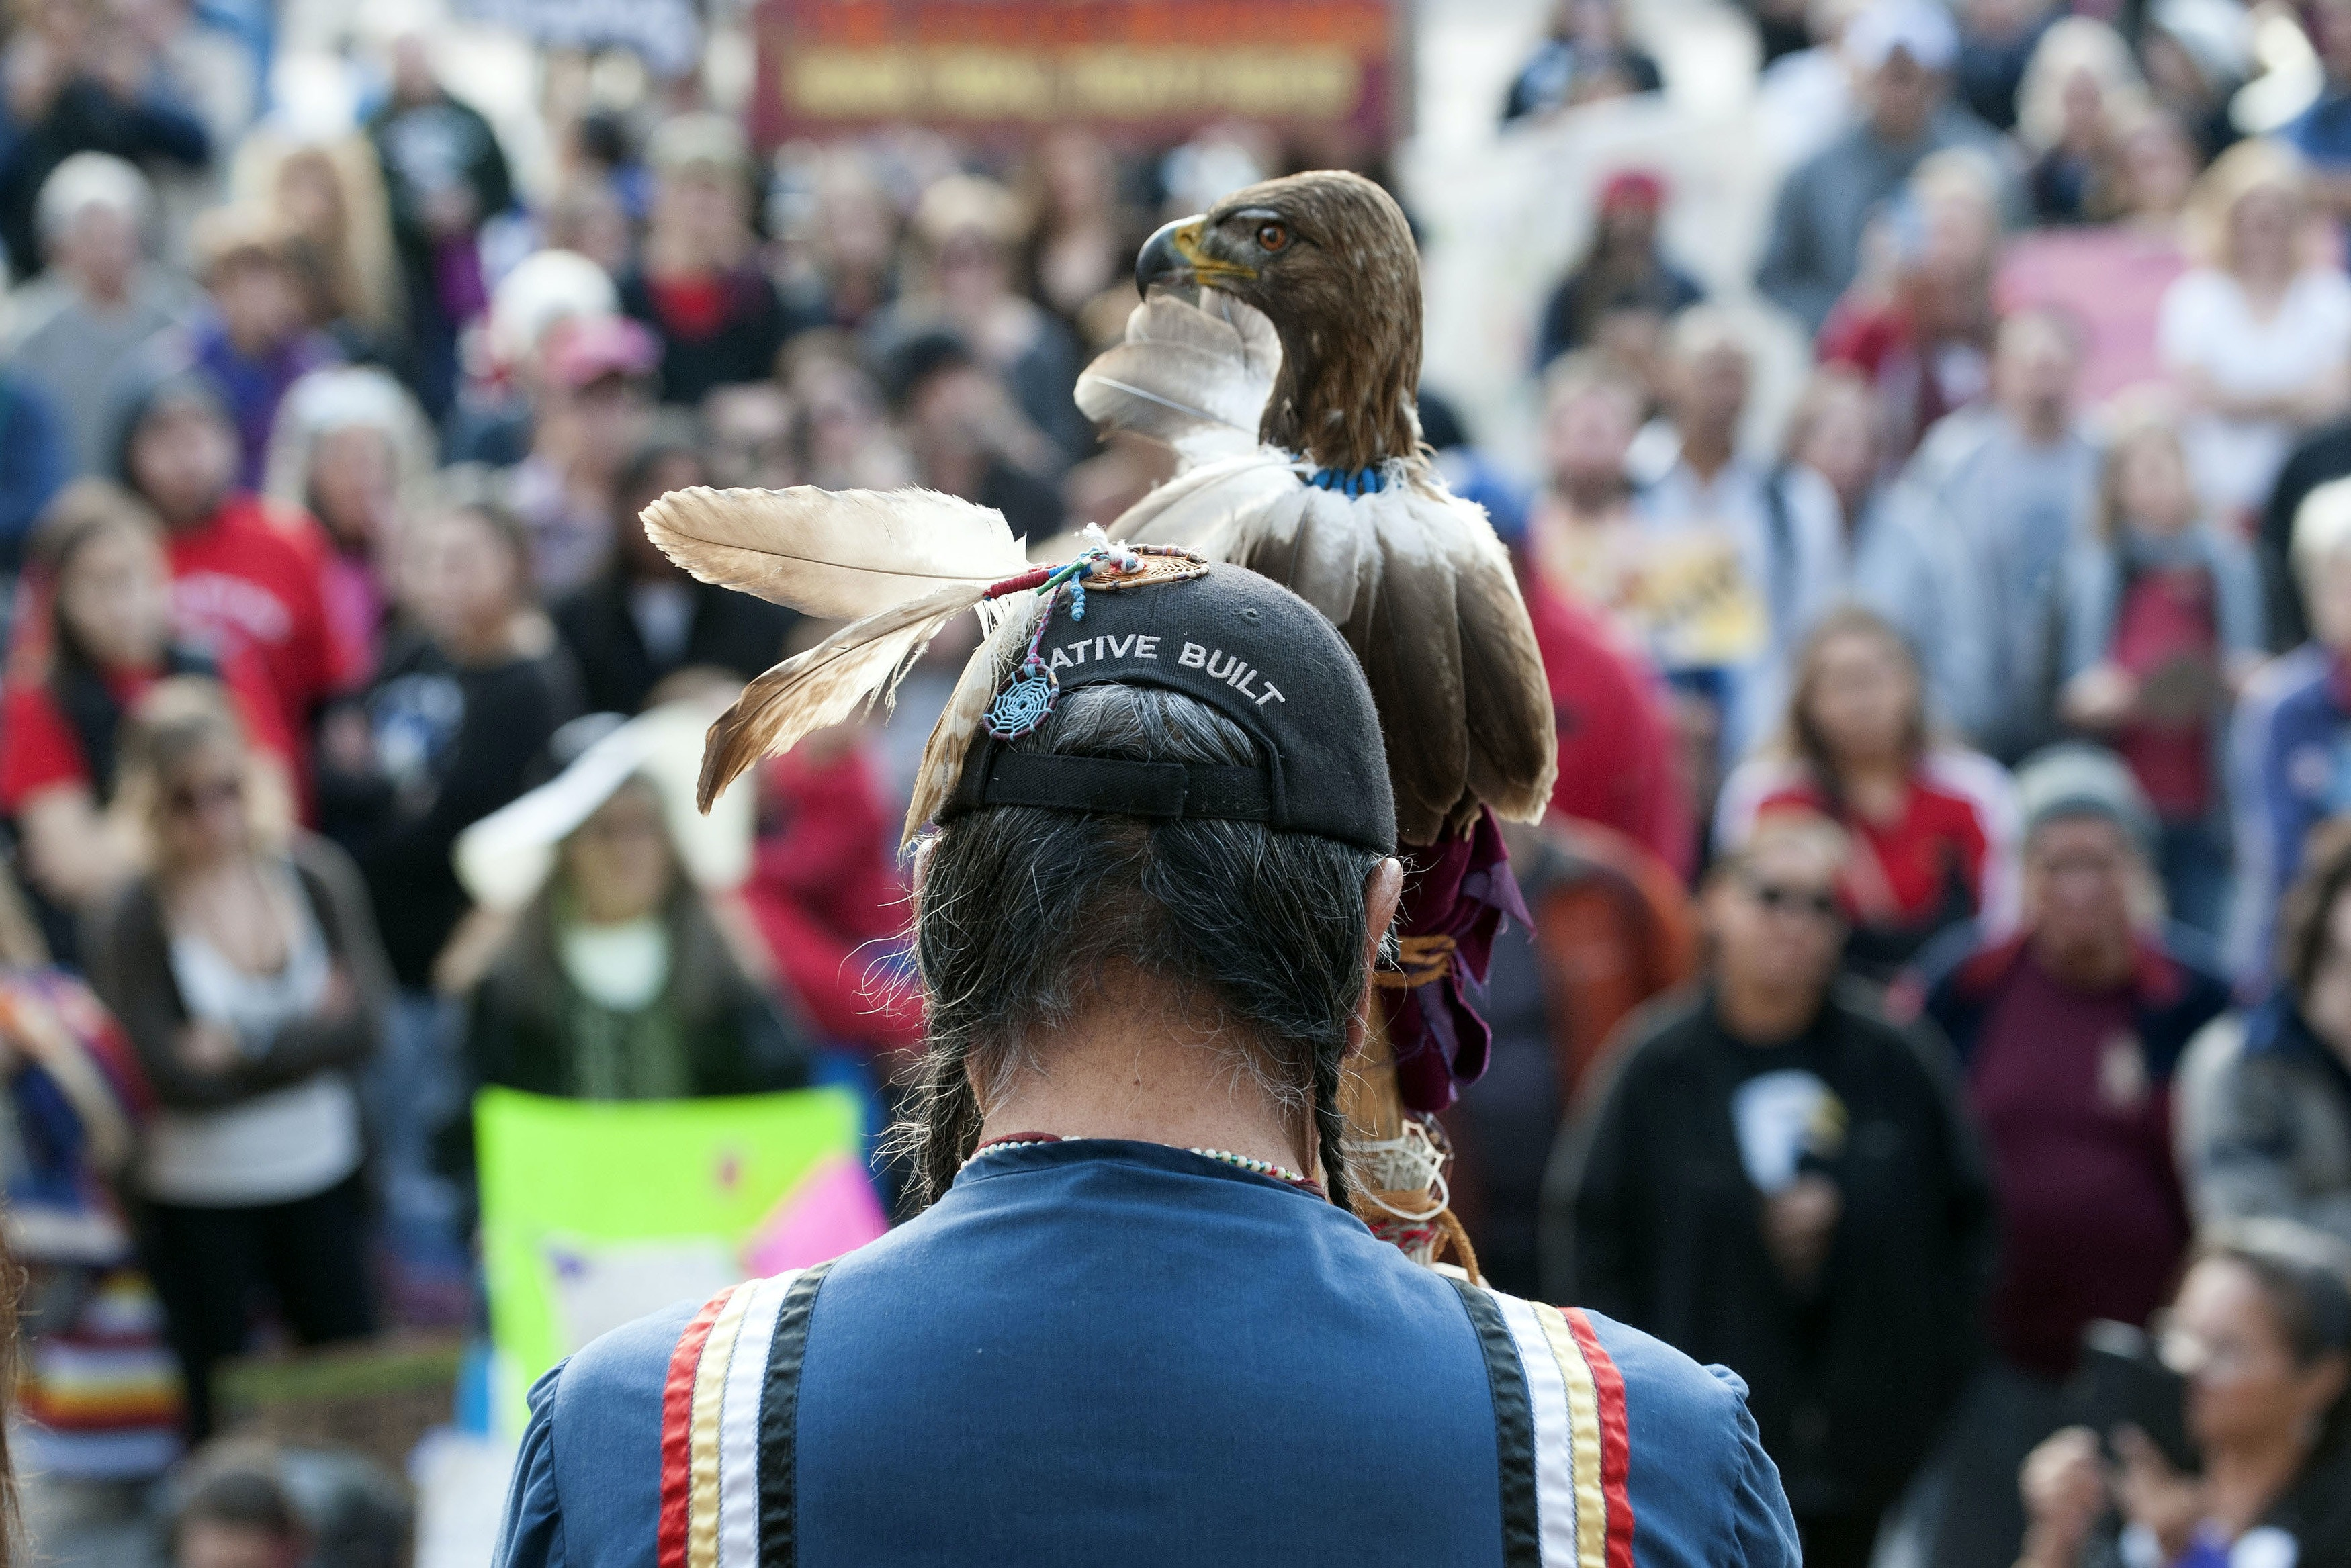 Robert Cross Crocked Eyes of the Lakota Nation addresses indigenous rights activists gathered at the Colorado State Capital during the Native Nations March in Denver, Colorado on March 10, 2017.Native tribes from around the US gathered for four days of protest against the administration of US President Donald Trump and the Dakota Access oil pipeline. In the first week of his presidency, Donald Trump signed executive orders to revive the Dakota Access project, along with a second pipeline put on hold by the Obama administration, Keystone XL. / AFP PHOTO / Jason Connolly (Photo credit should read JASON CONNOLLY/AFP/Getty Images)